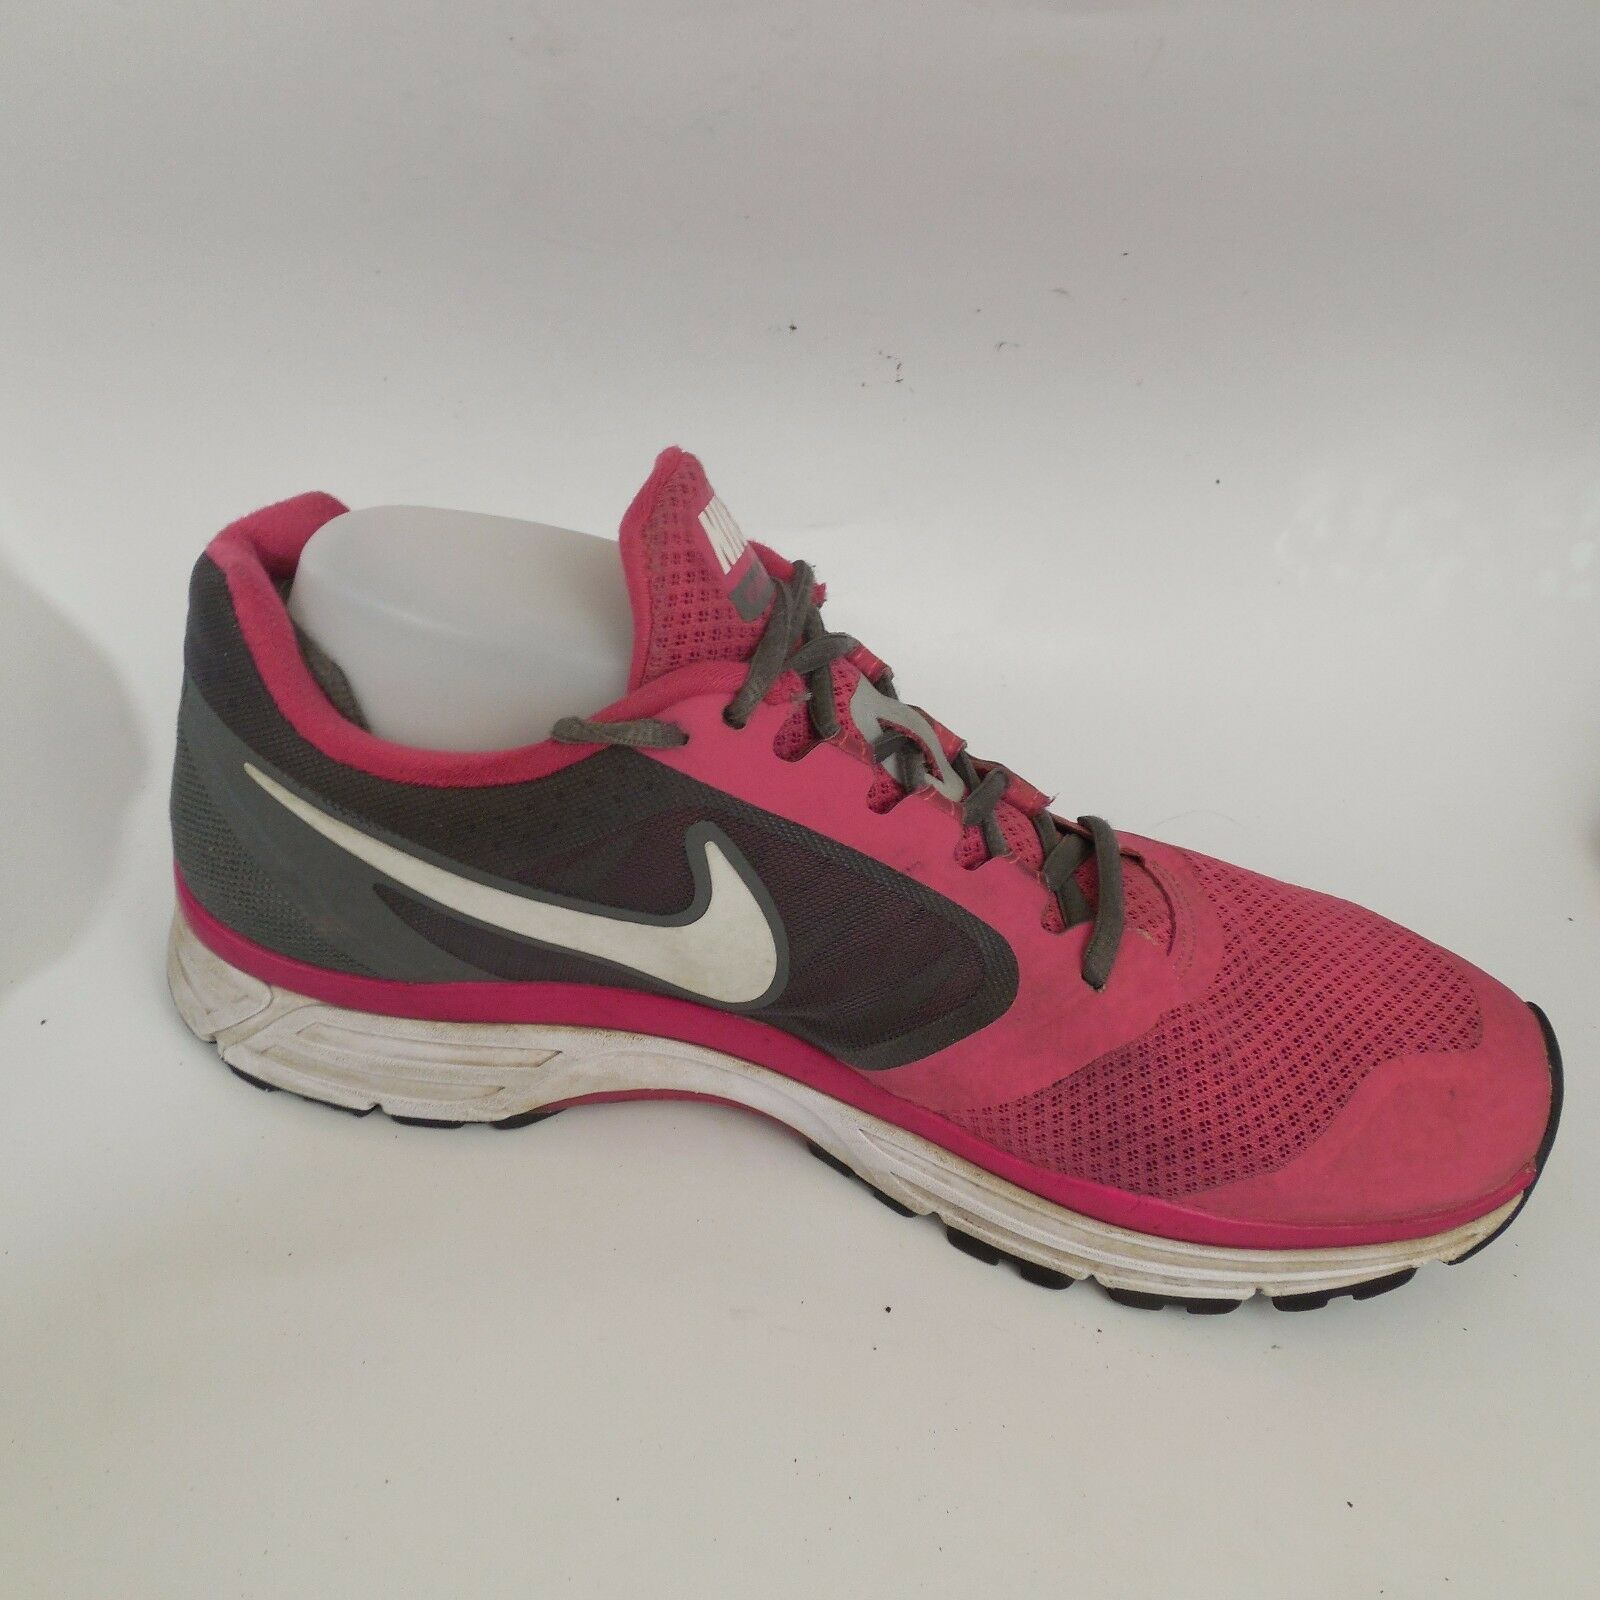 brand new 991b0 54ef0 ... Womens Nike Vomero 8 Size Size Size 11.5 Med Pink Black Sneakers 582894 610  Preowned Shoes ...